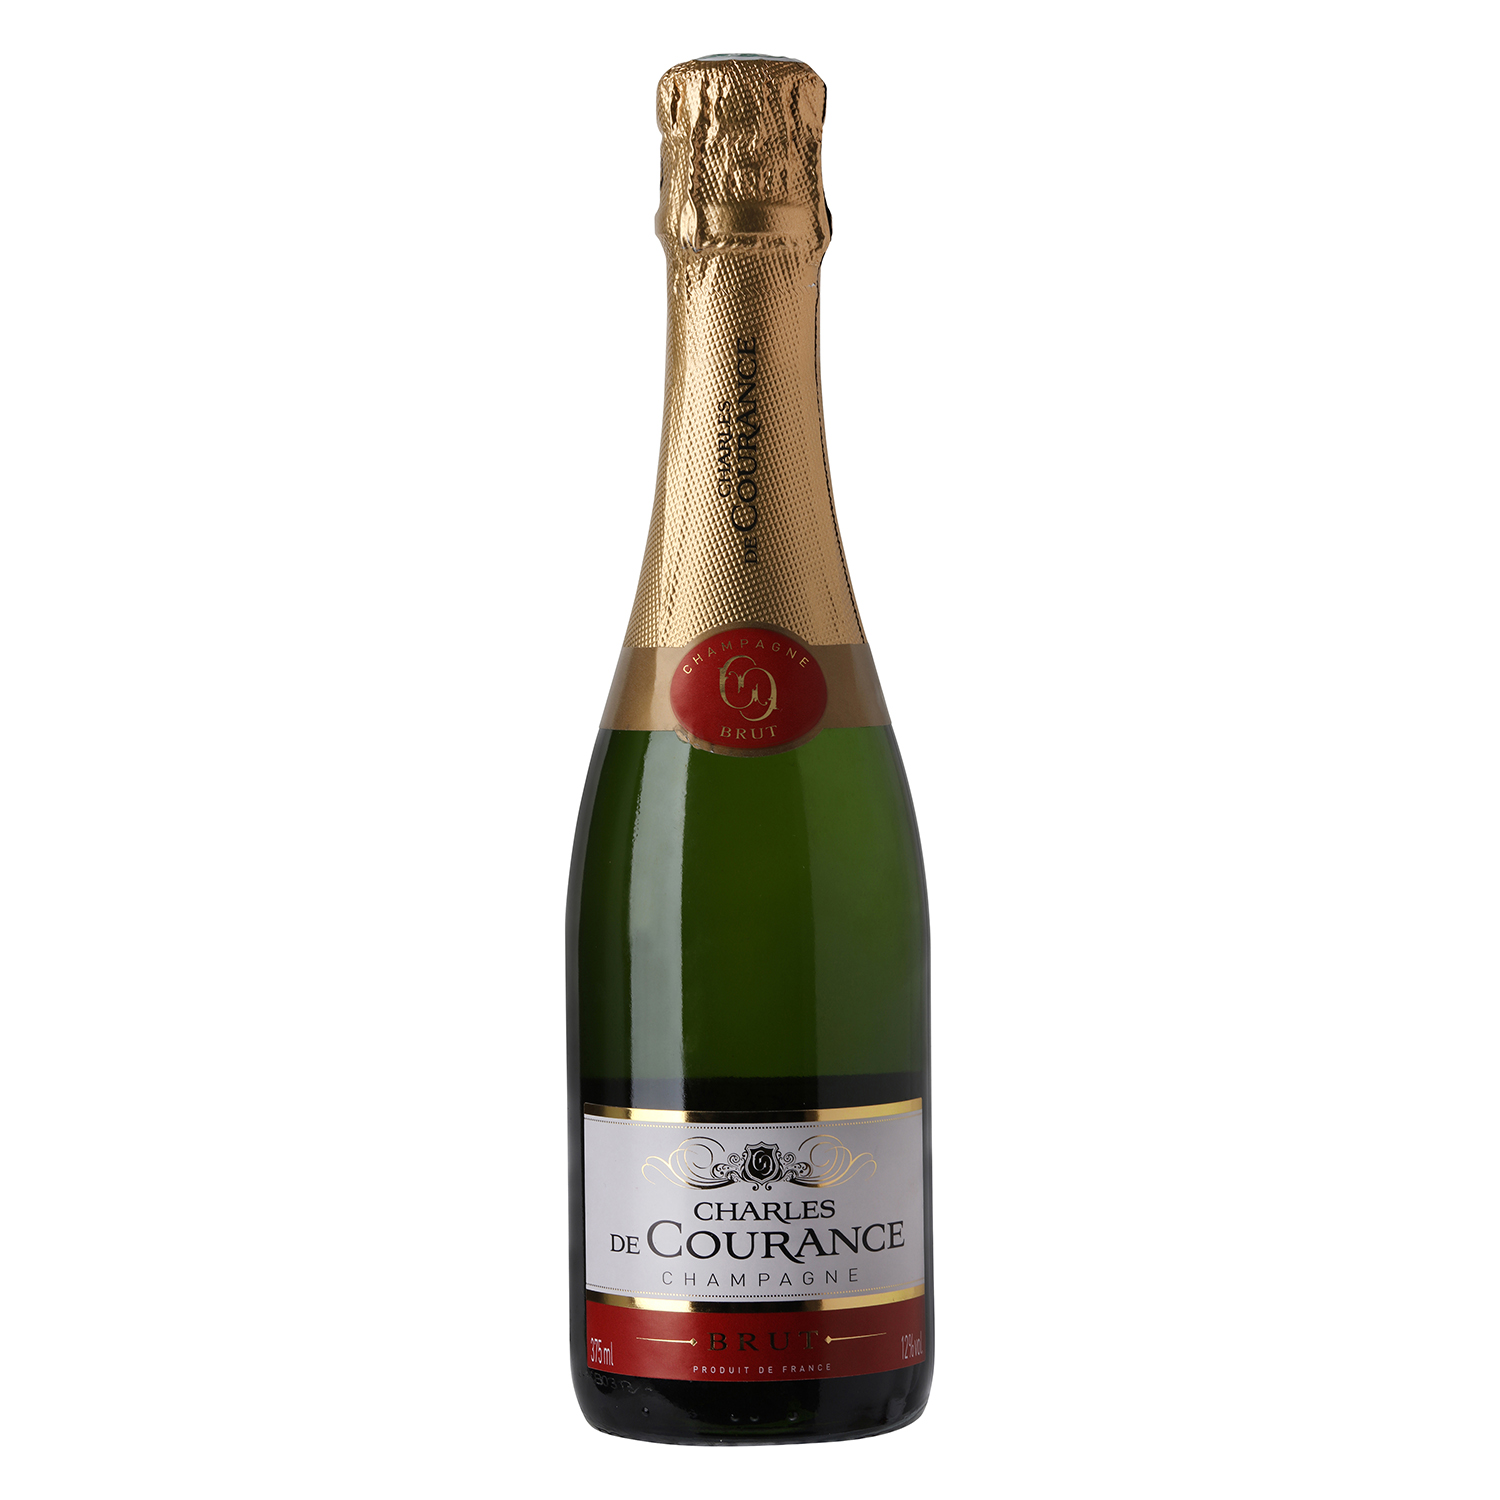 Champagne Courance brut 37,5 cl.